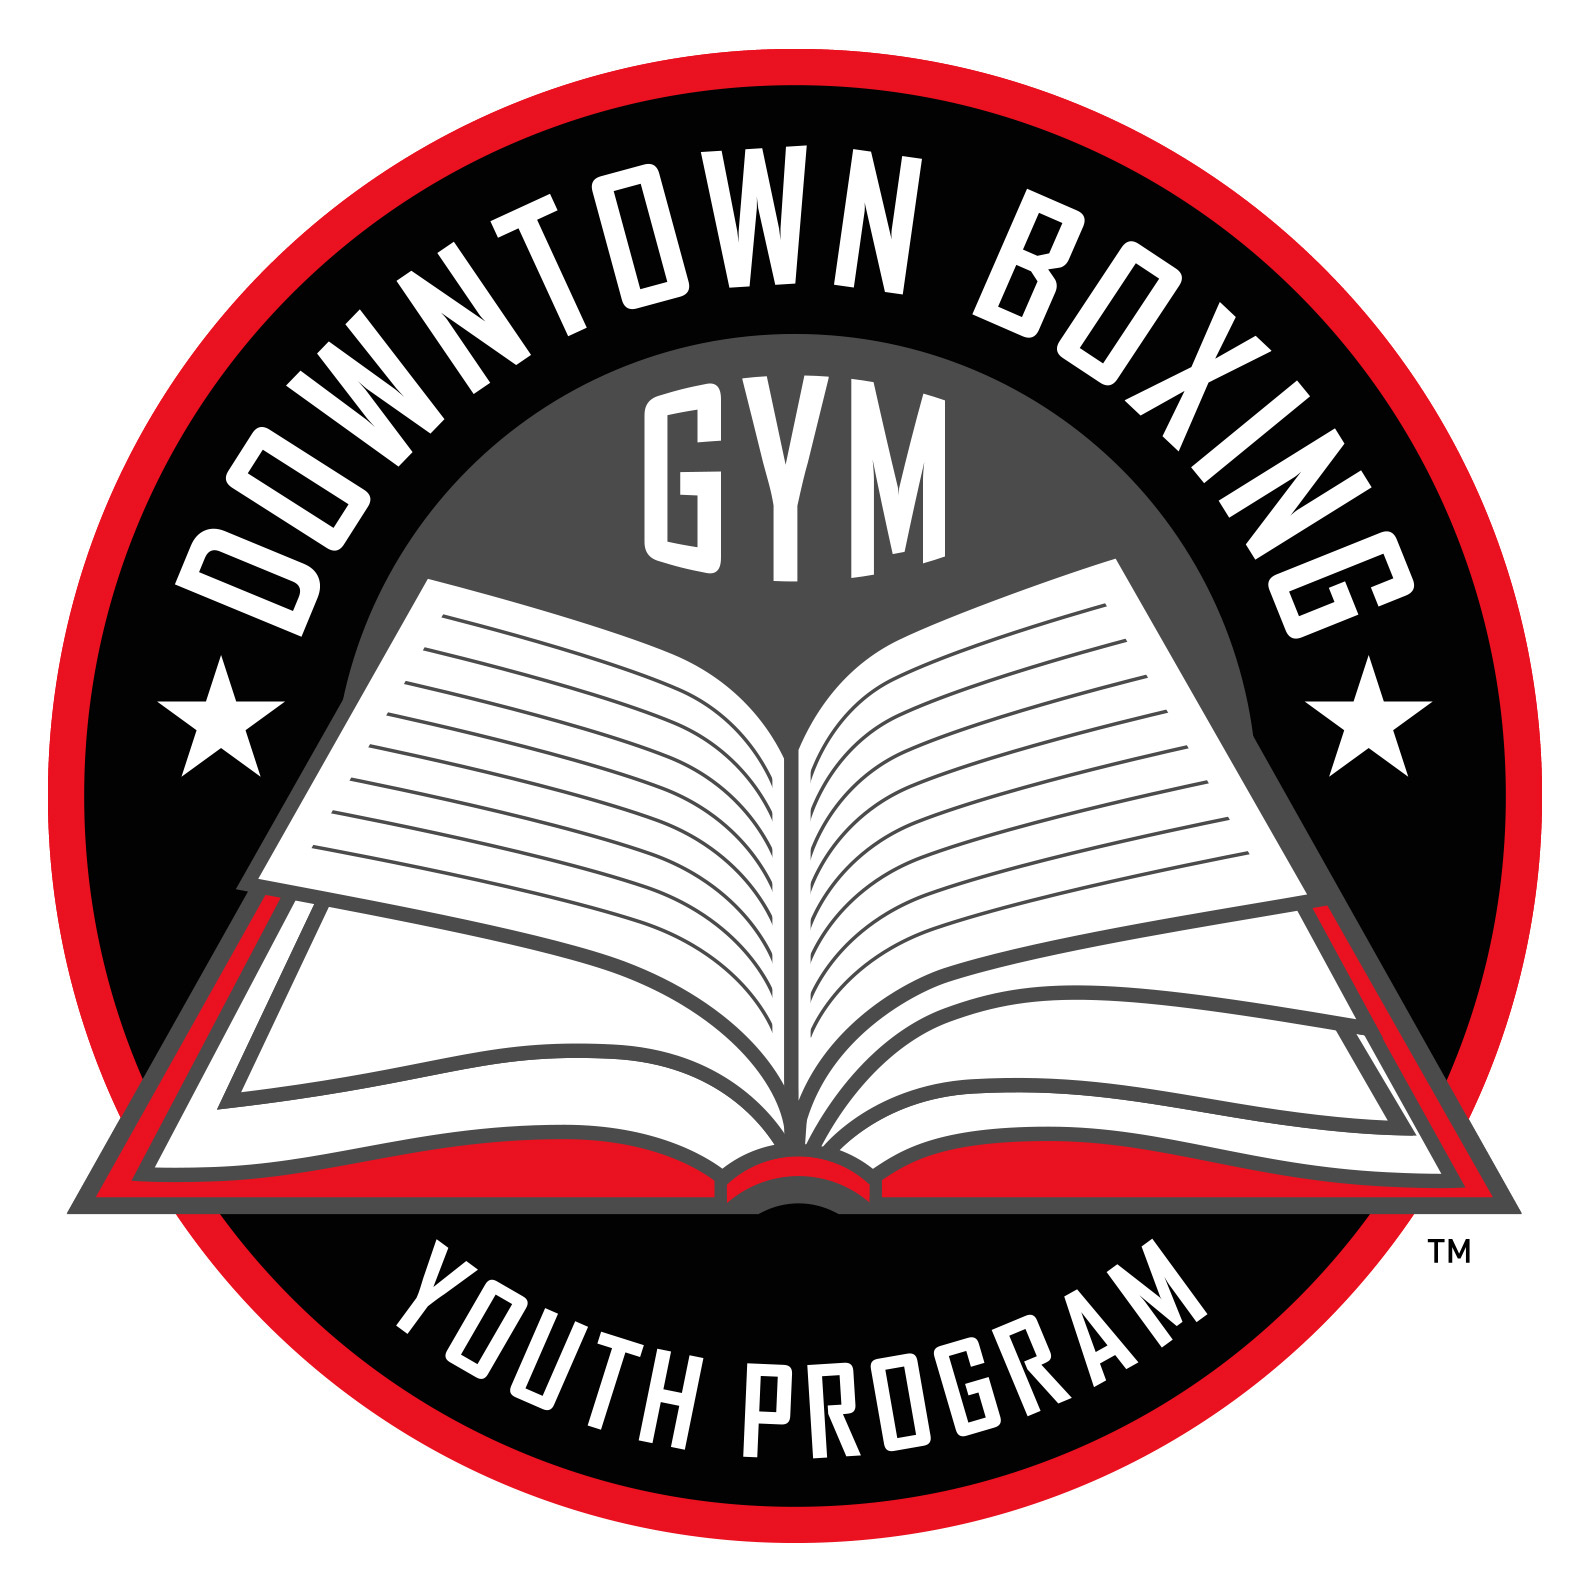 Logo of charity Downtown Boxing Gym Youth Program